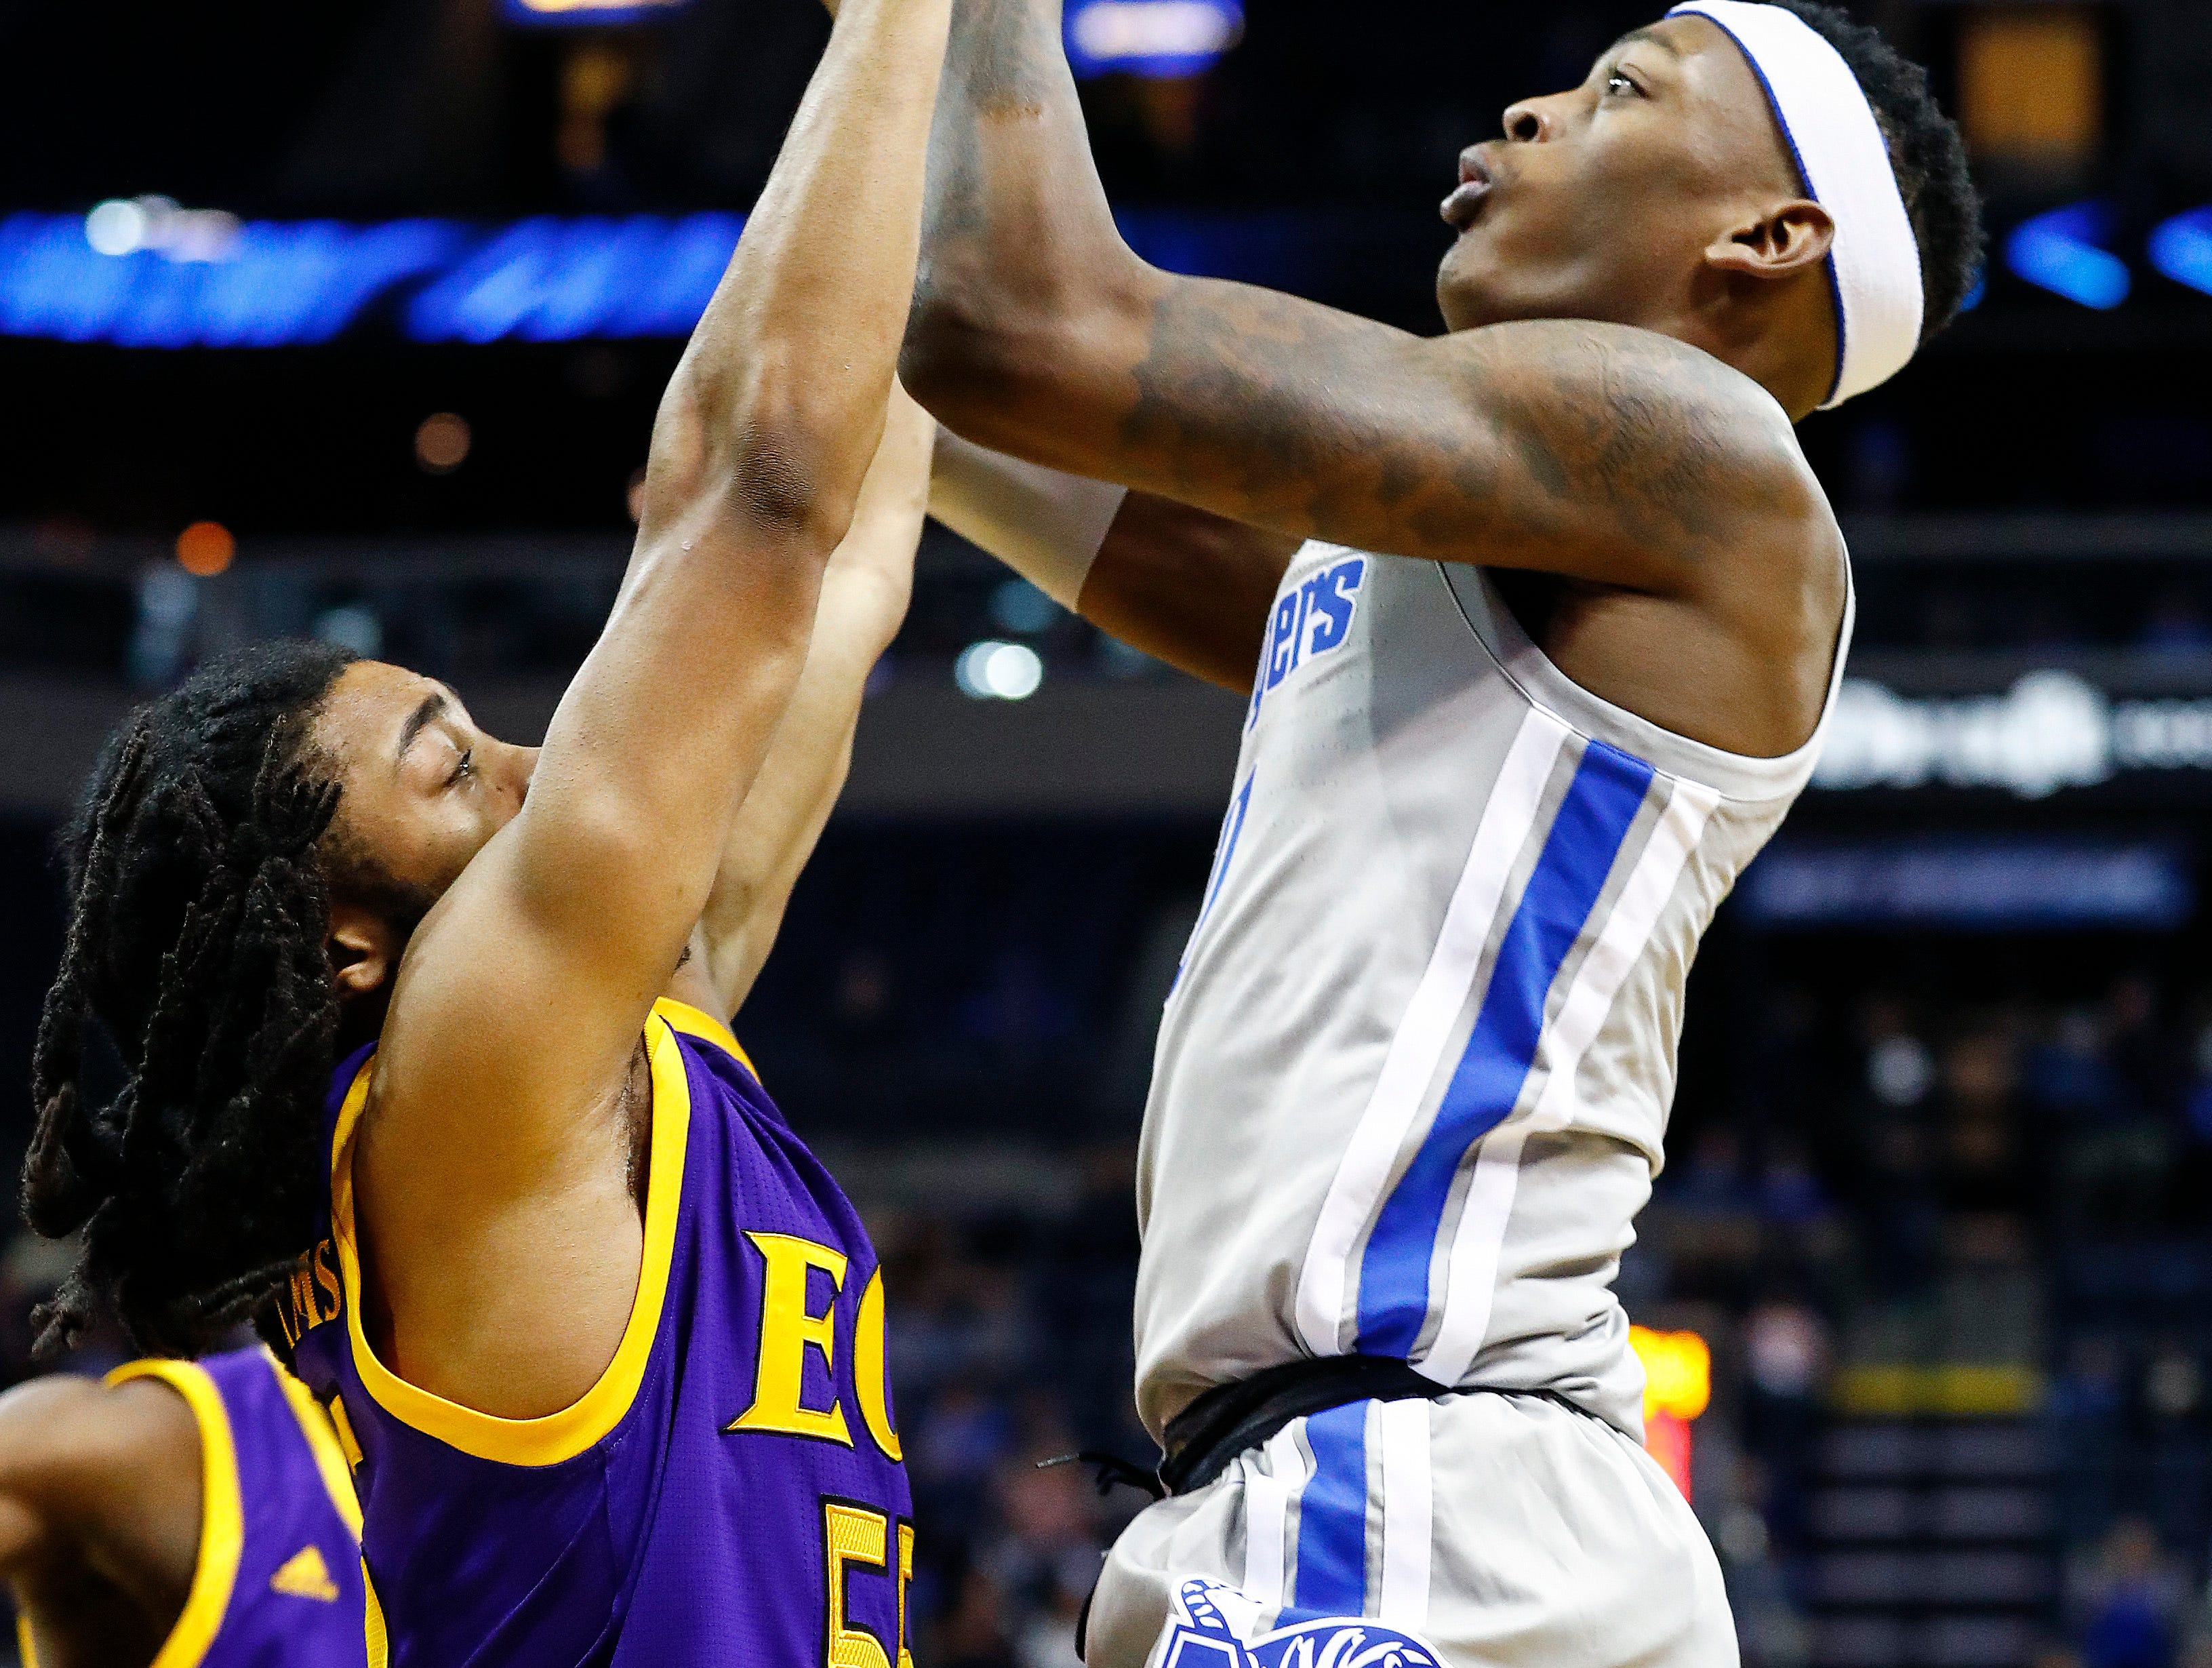 Memphis forward Kyvon Davenport (right) puts up a shot over ECU defender Shawn Williams (left) during action at the FedExForum, Thursday, January 10, 2019.